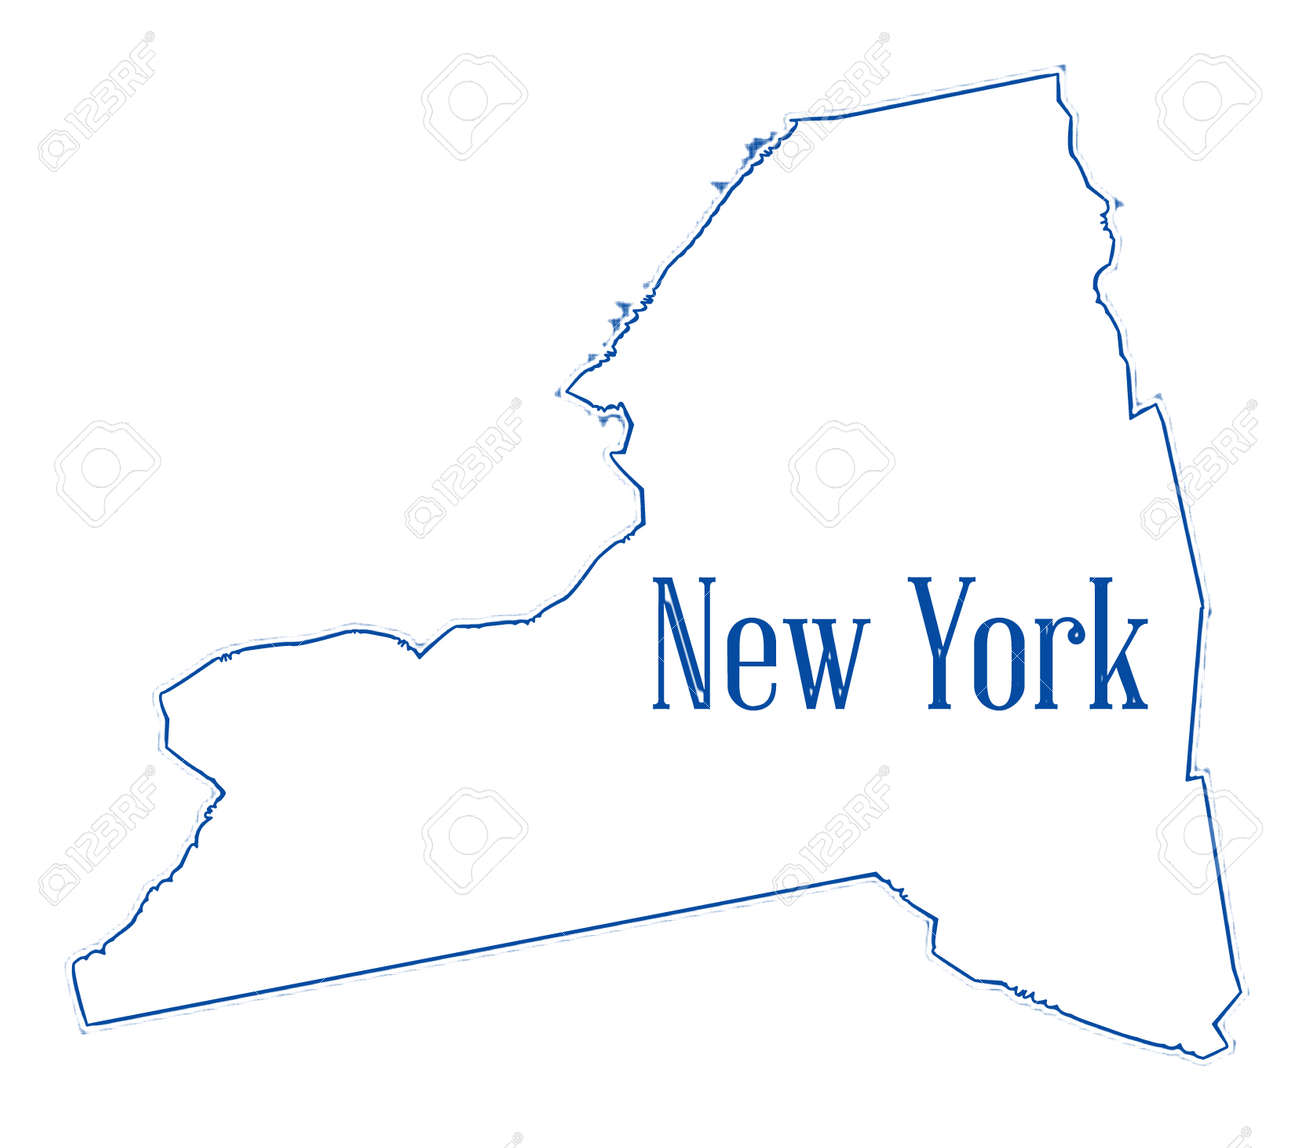 State Map Outline Of New York Over A White Background Stock Photo